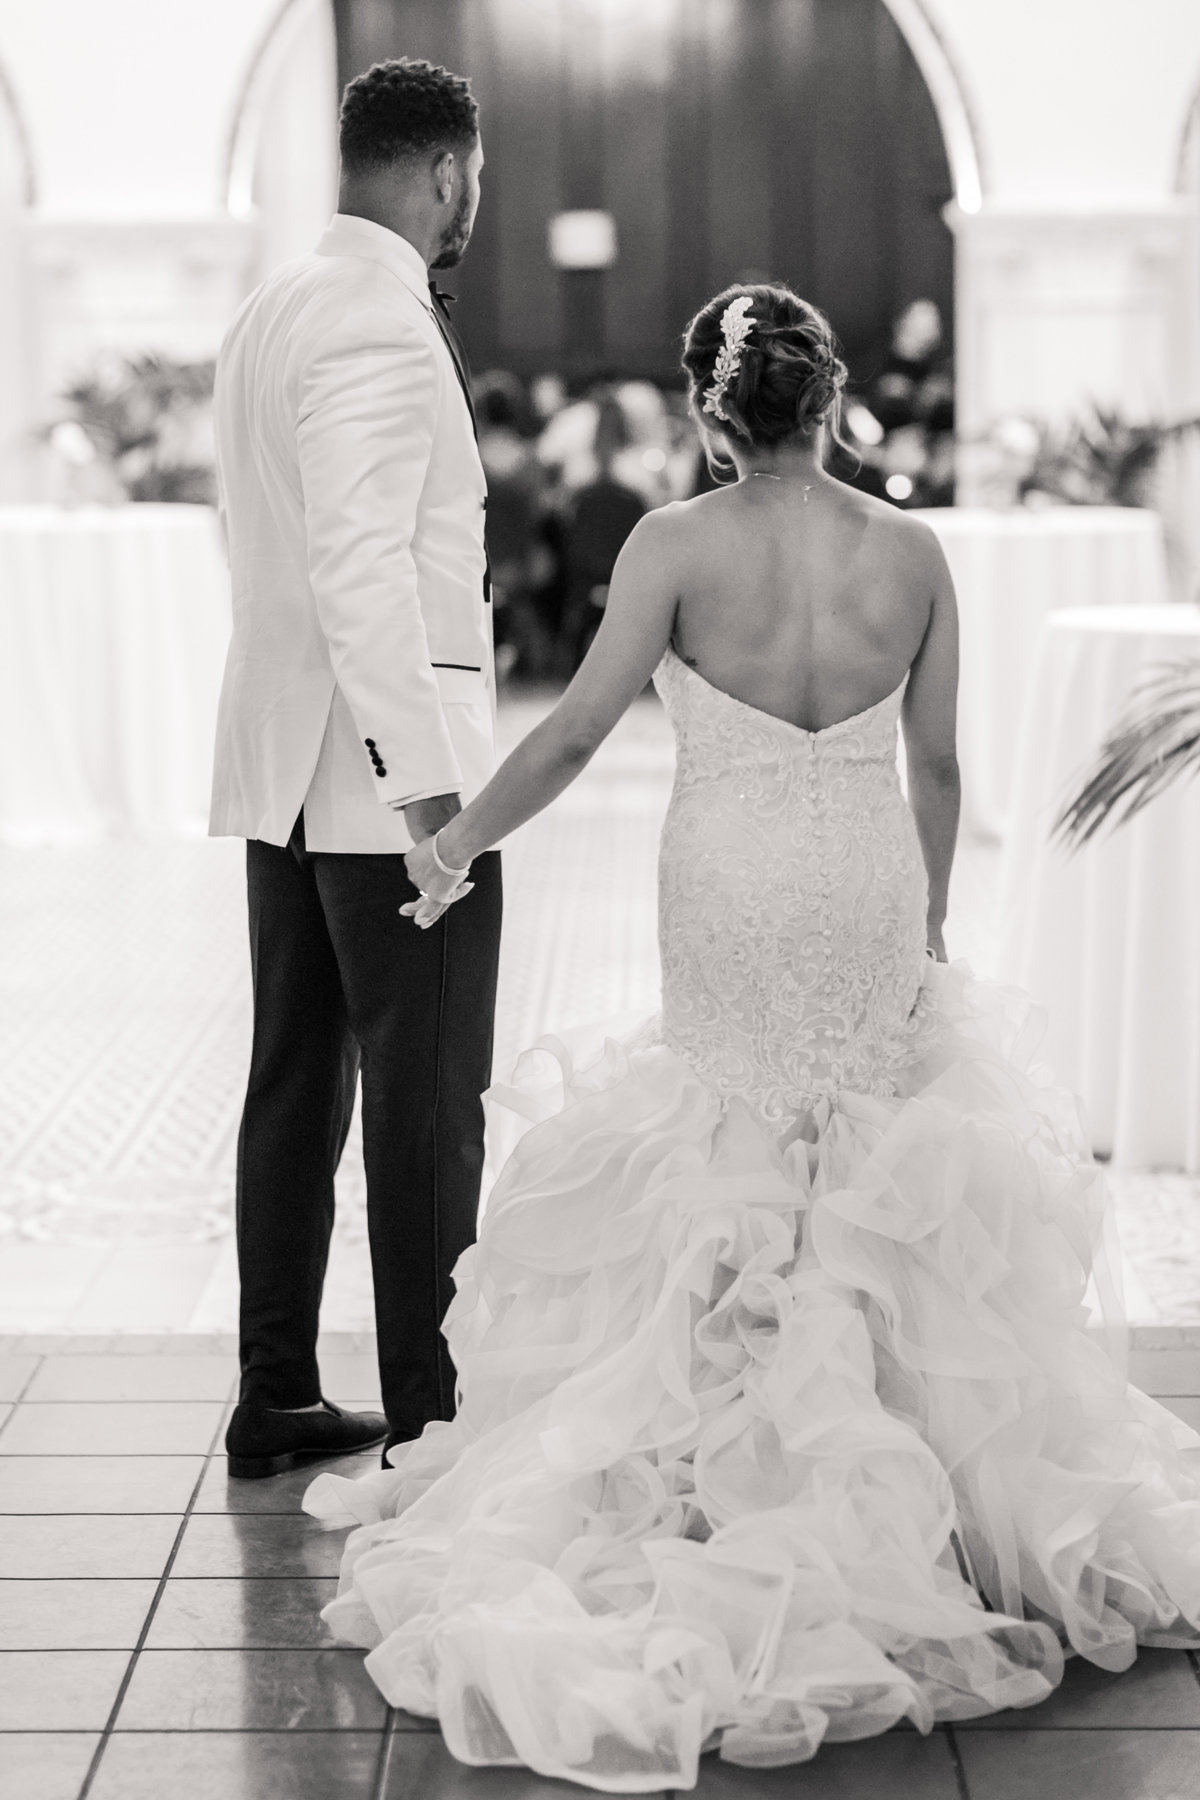 Ebell_Los_Angeles_Malcolm_Smith_NFL_Navy_Brass_Wedding_Valorie_Darling_Photography - 118 of 122